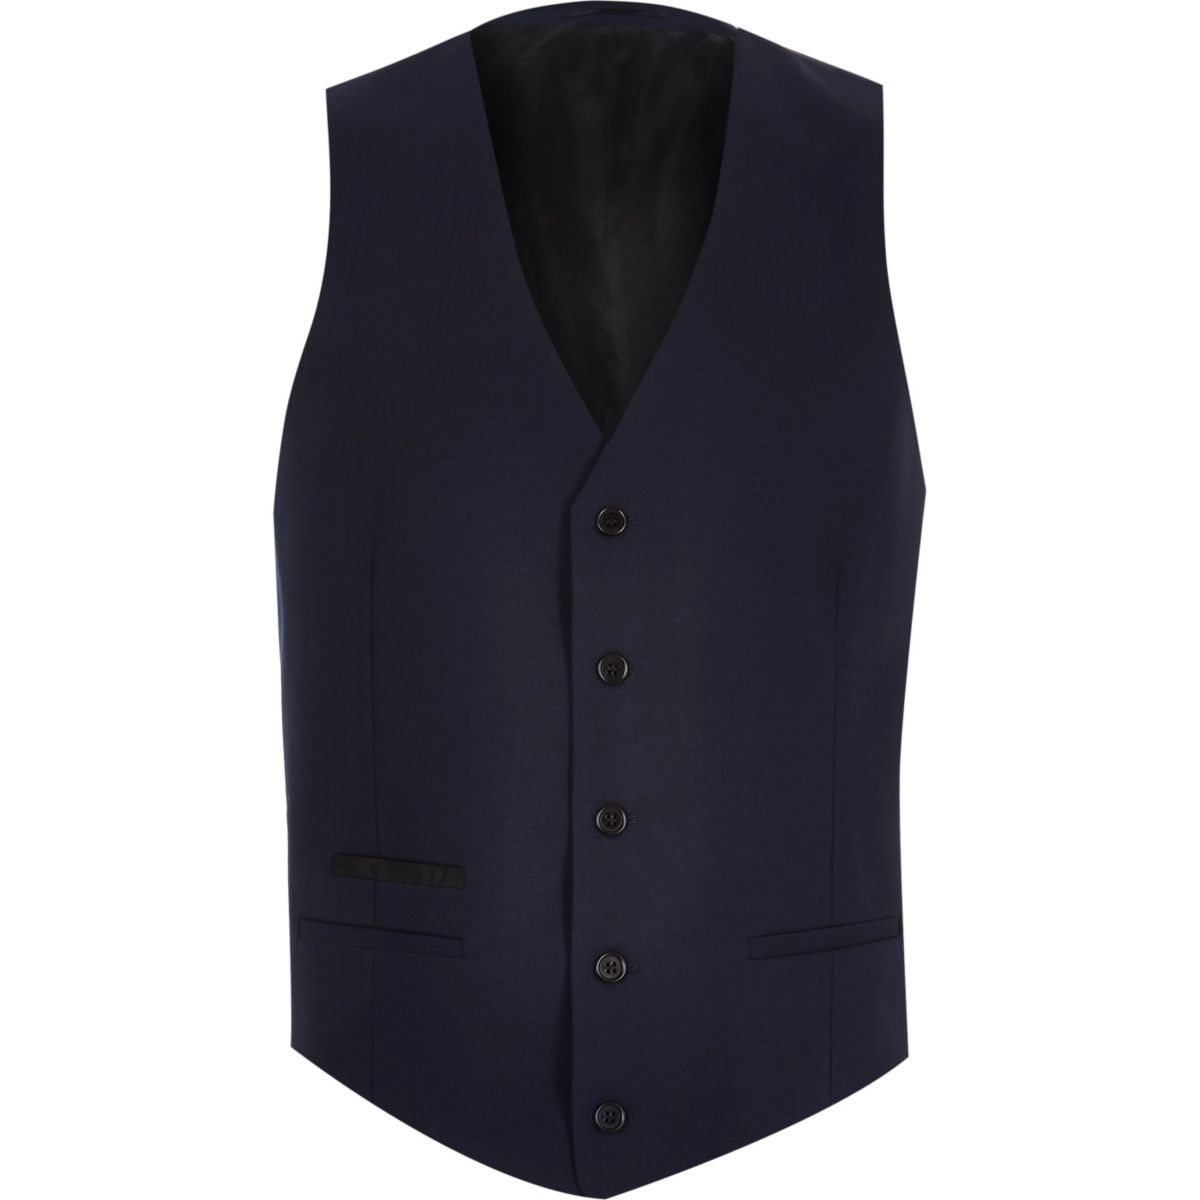 Finish your look with your favorite pair of trousers, button-up shirt and dress shoe. Stay warm during chillier months with a vest. Worn with or without a blazer or men's jacket, a sweater vest will help you feel more put-together.